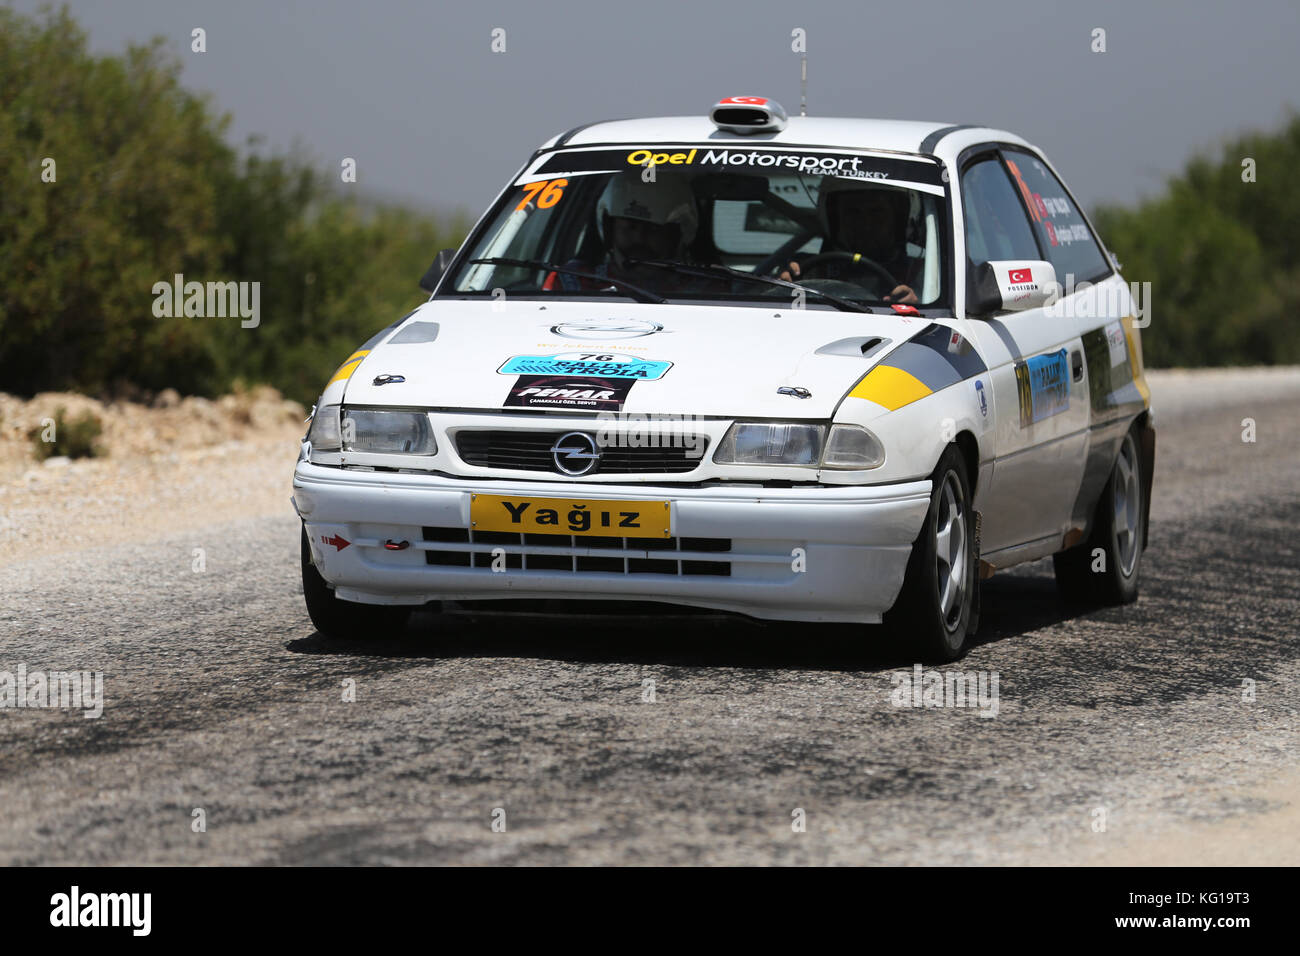 Opel Astra Stock Photos Amp Opel Astra Stock Images Alamy